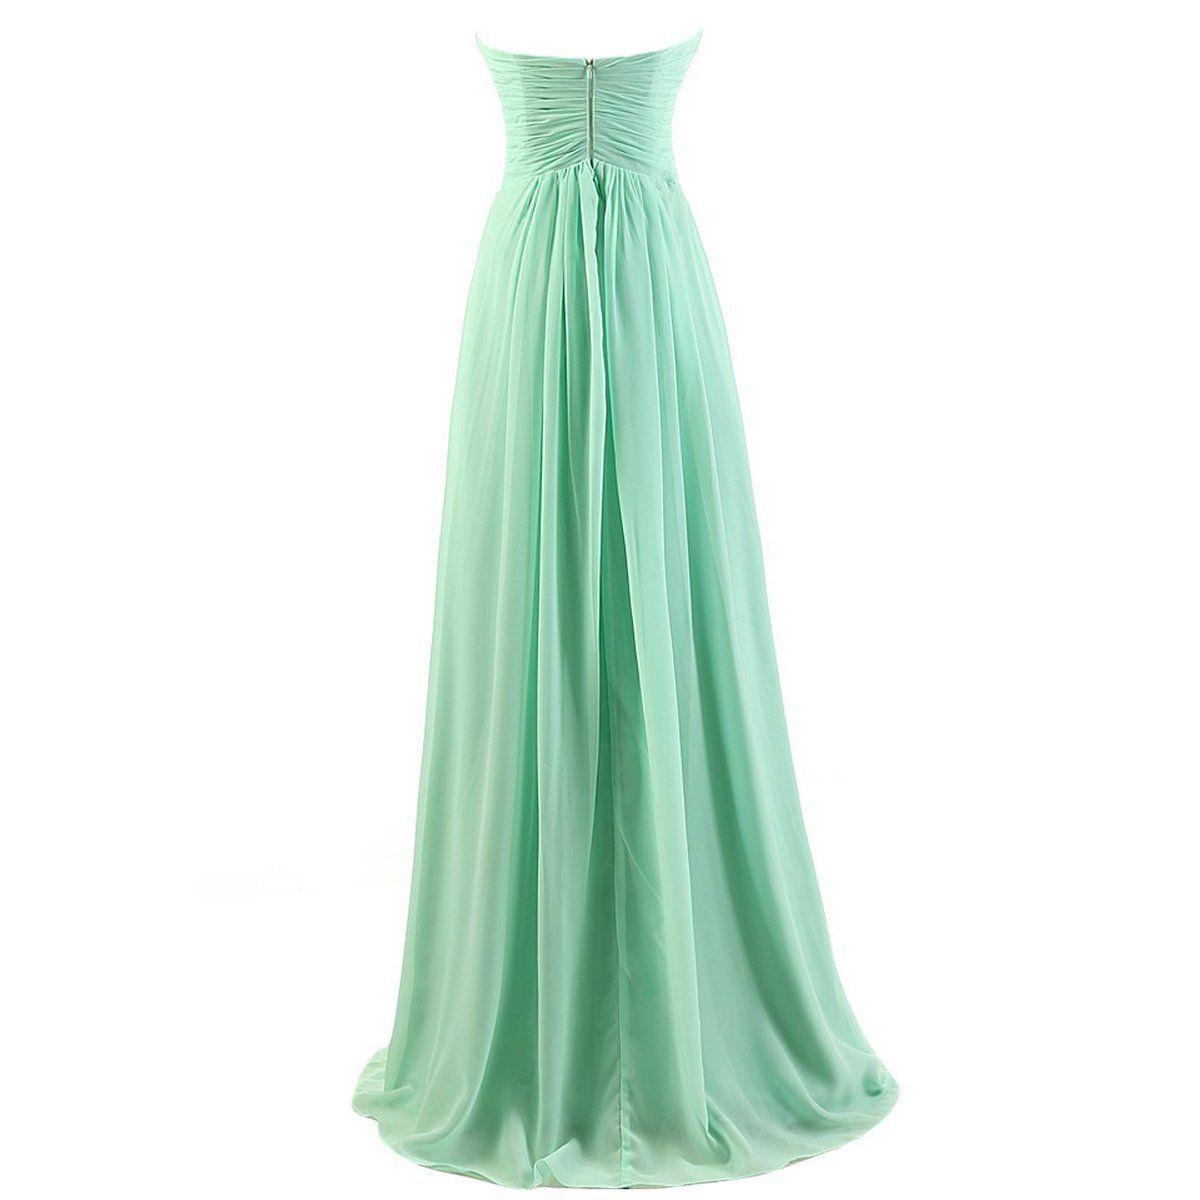 Tngan sweetheart bridesmaid chiffon prom dresses long evening gowns